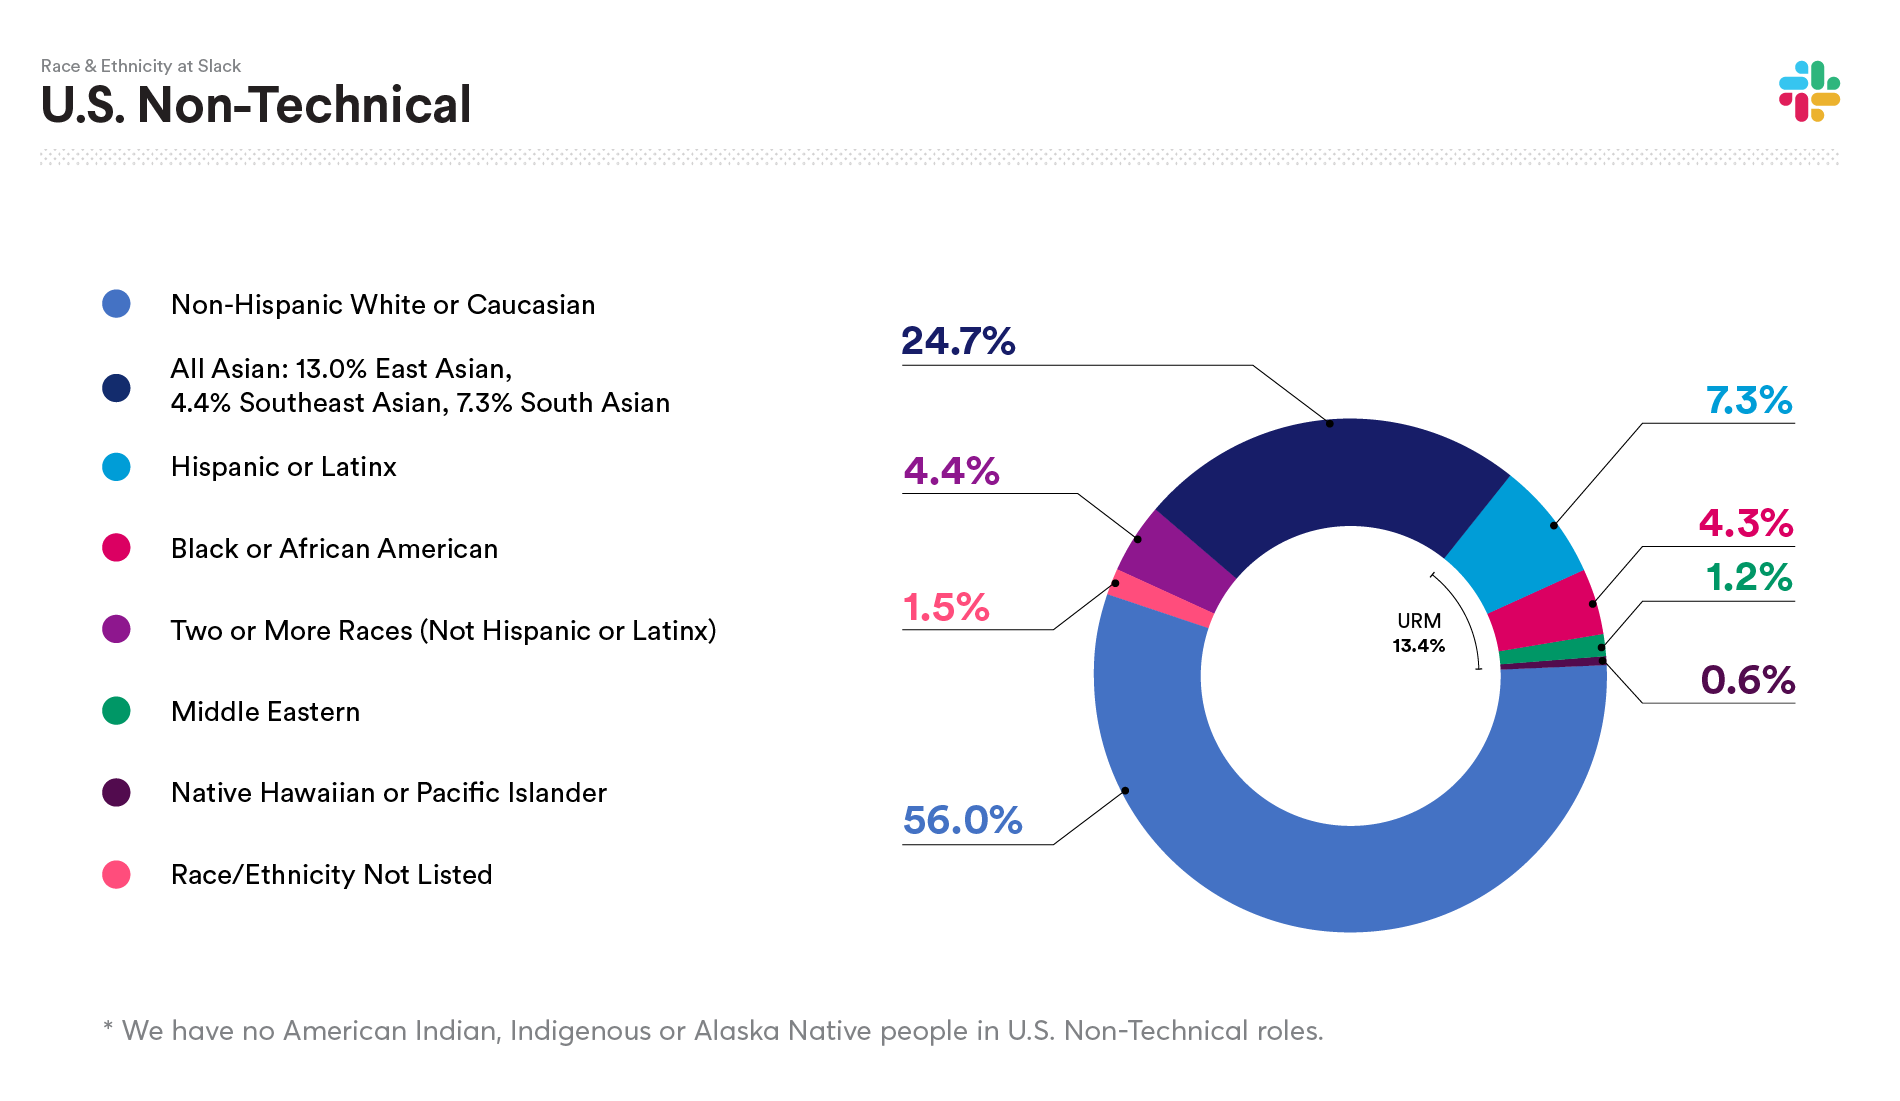 2019 Slack data on U.S. Non-Technical Race and Ethnicity: Non-Hispanic White or Caucasian 56%; All Asian: 24.7%; Hispanic or Latinx 7.3%; Black or African American 4.3%; Two or more races (not Hispanic or Latinx) 4.4%; Middle Eastern 1.2%; Native Hawaiian or Pacific Islander 0.6%; American Indian, Indigenous or Alaska Native 0.0%; Race/Ethnicity not listed 1.5%